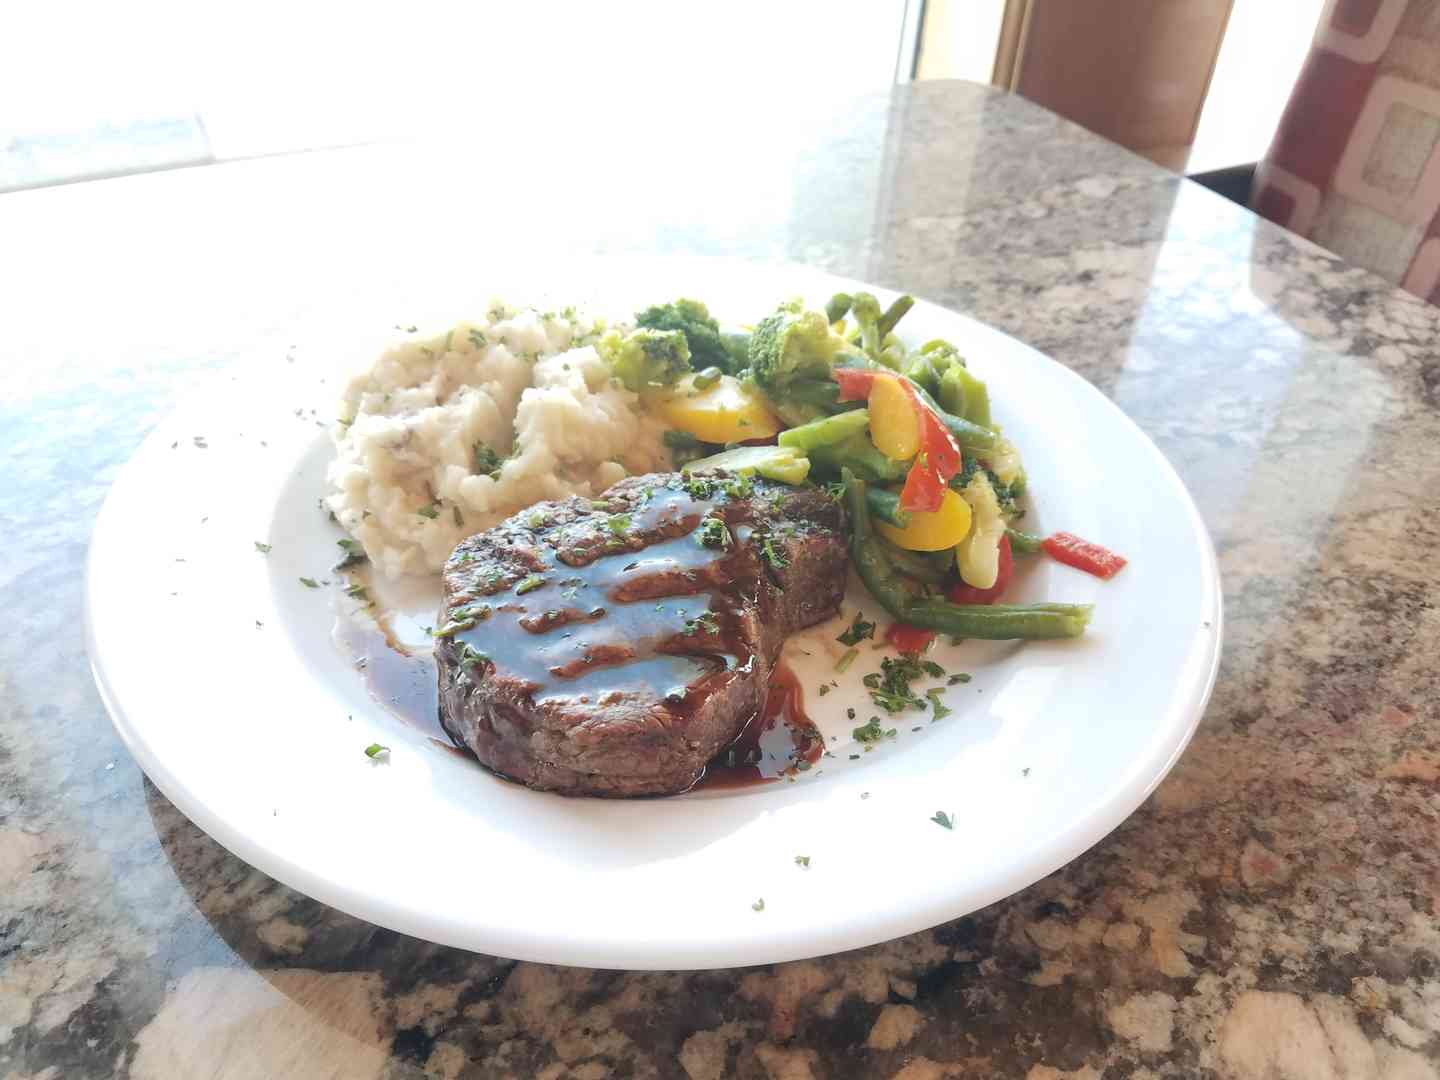 8 oz. Filet Mignon (angus beef)